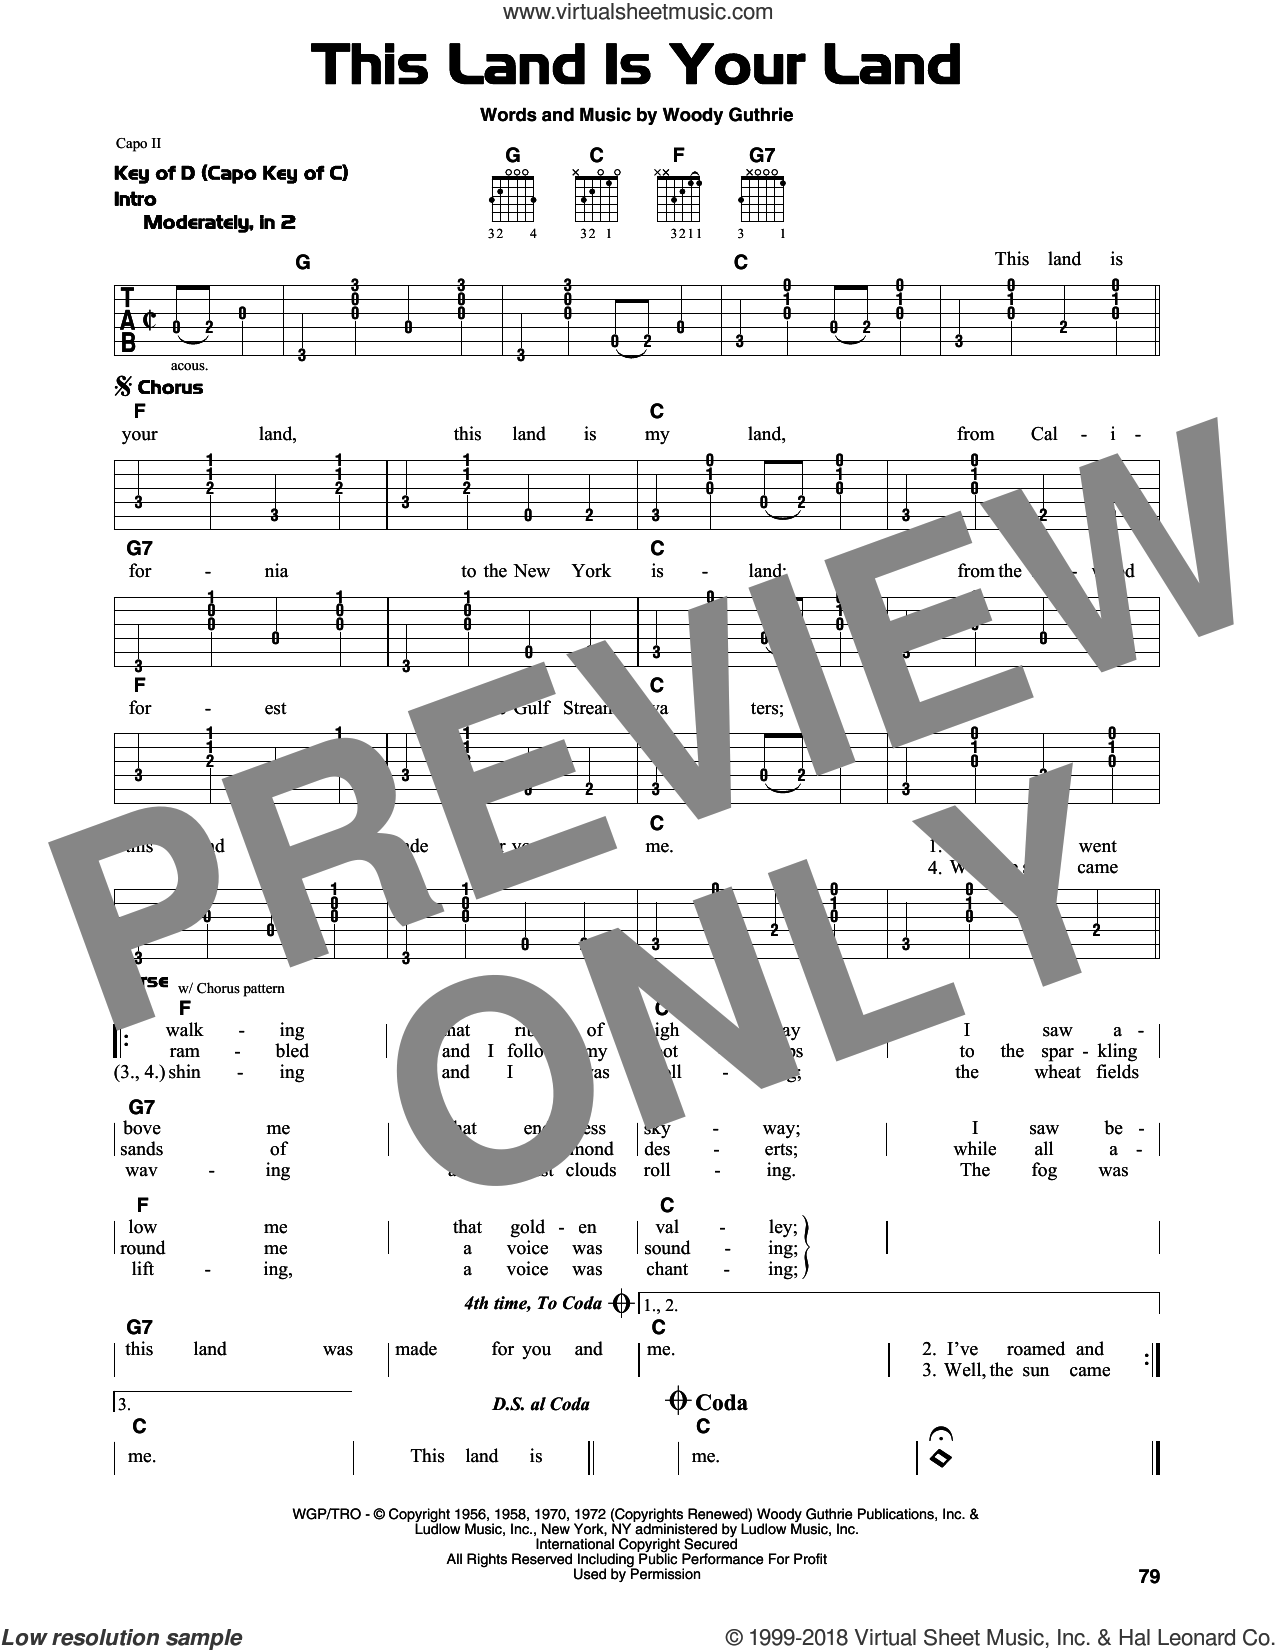 This Land Is Your Land sheet music for guitar solo (lead sheet) by Woody Guthrie, Peter, Paul & Mary and Woody & Arlo Guthrie, intermediate guitar (lead sheet). Score Image Preview.